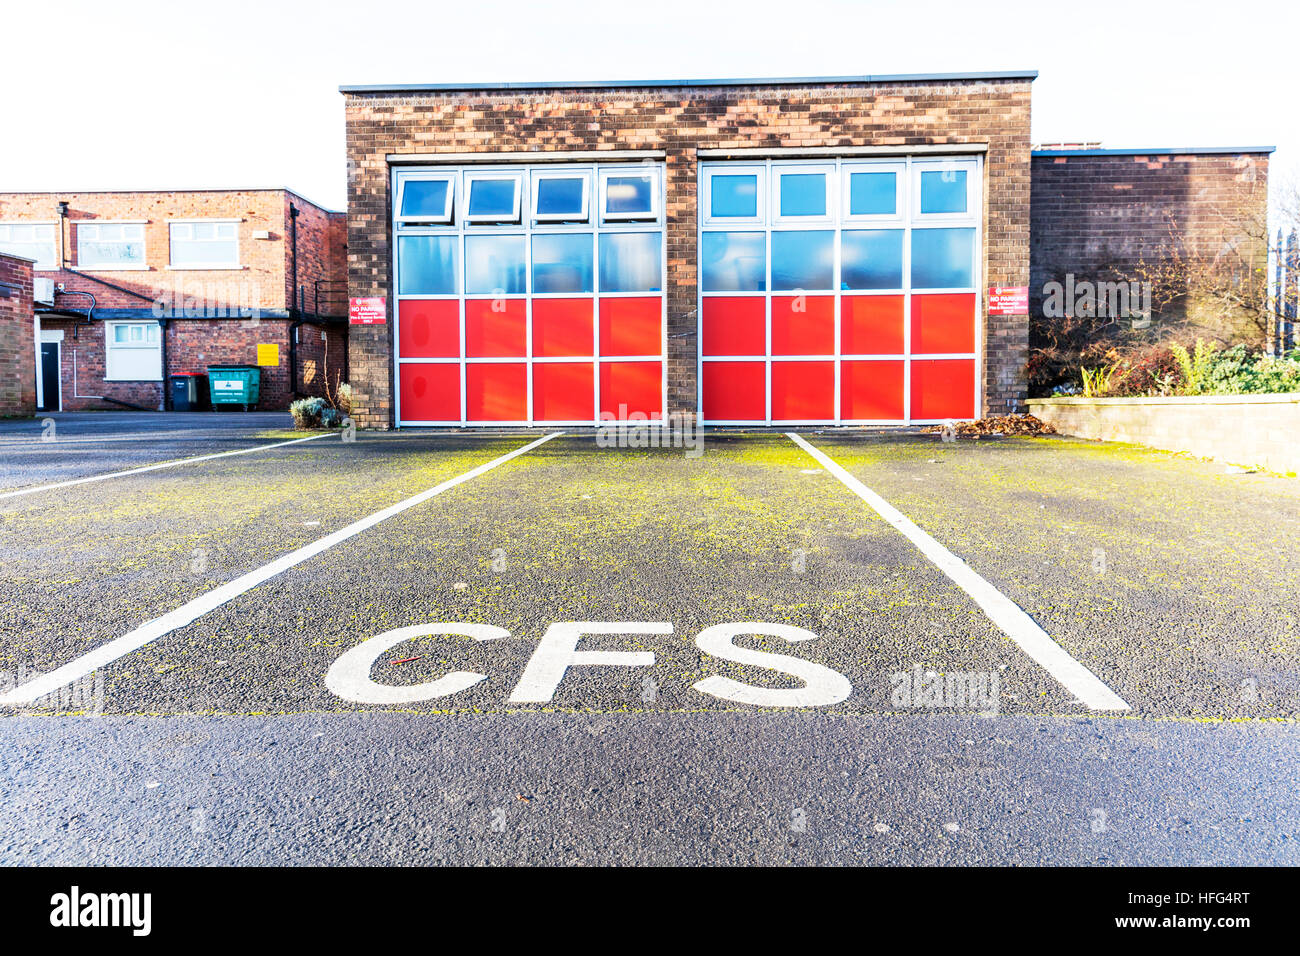 fire station cfs fire brigades building Scunthorpe town contract fire systems North Lincolnshire, England UK - Stock Image